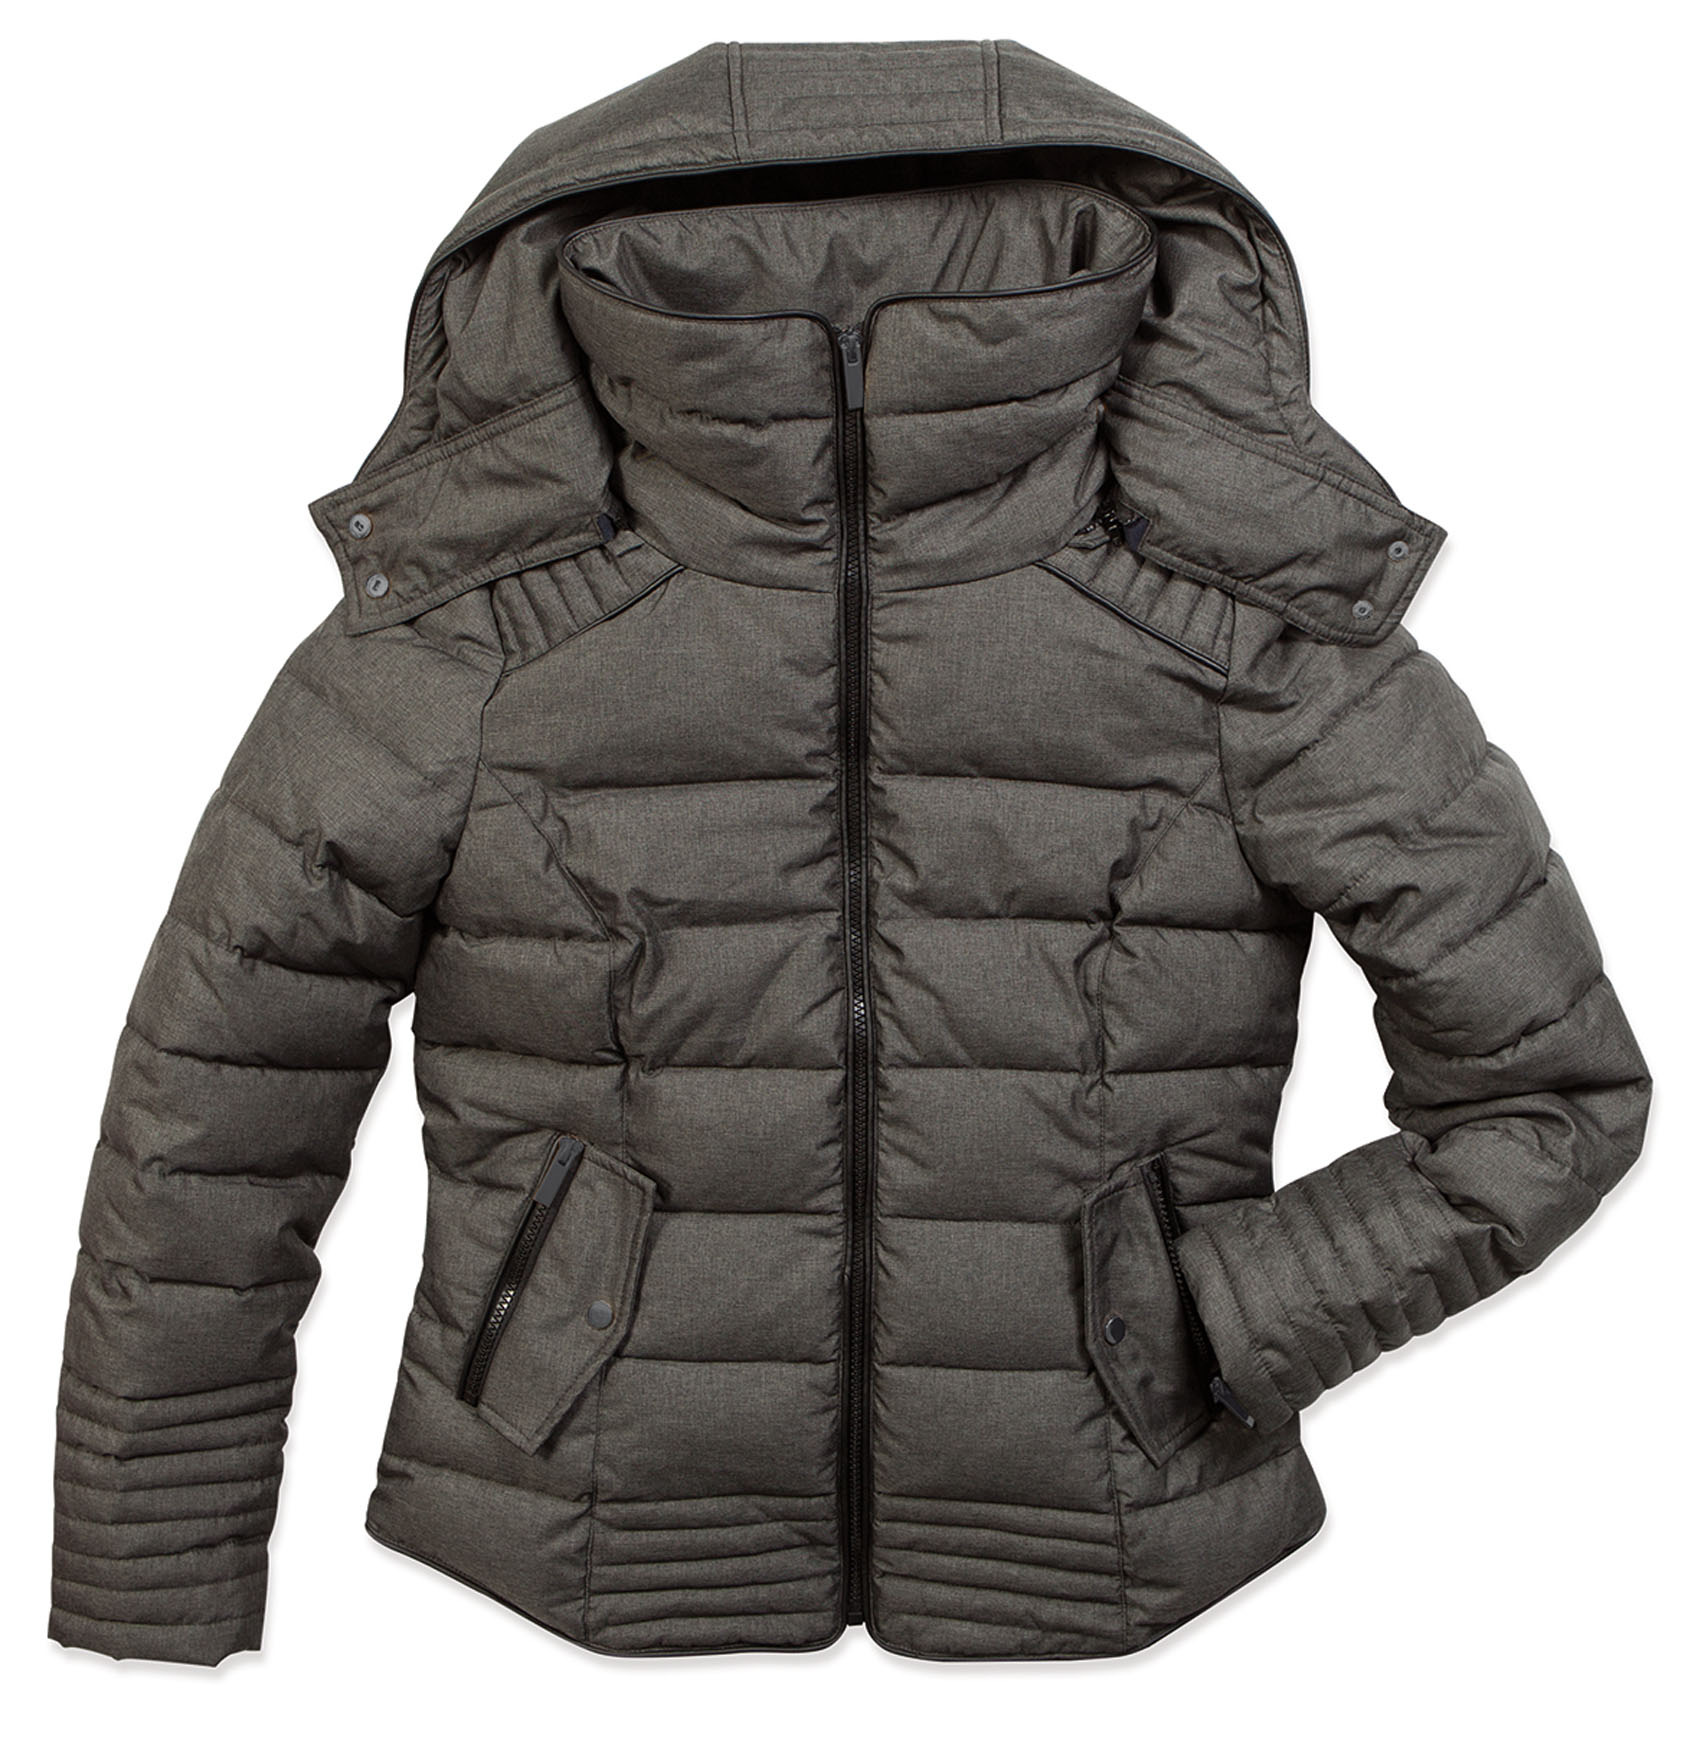 Stedman Jacket Urban Padded for her